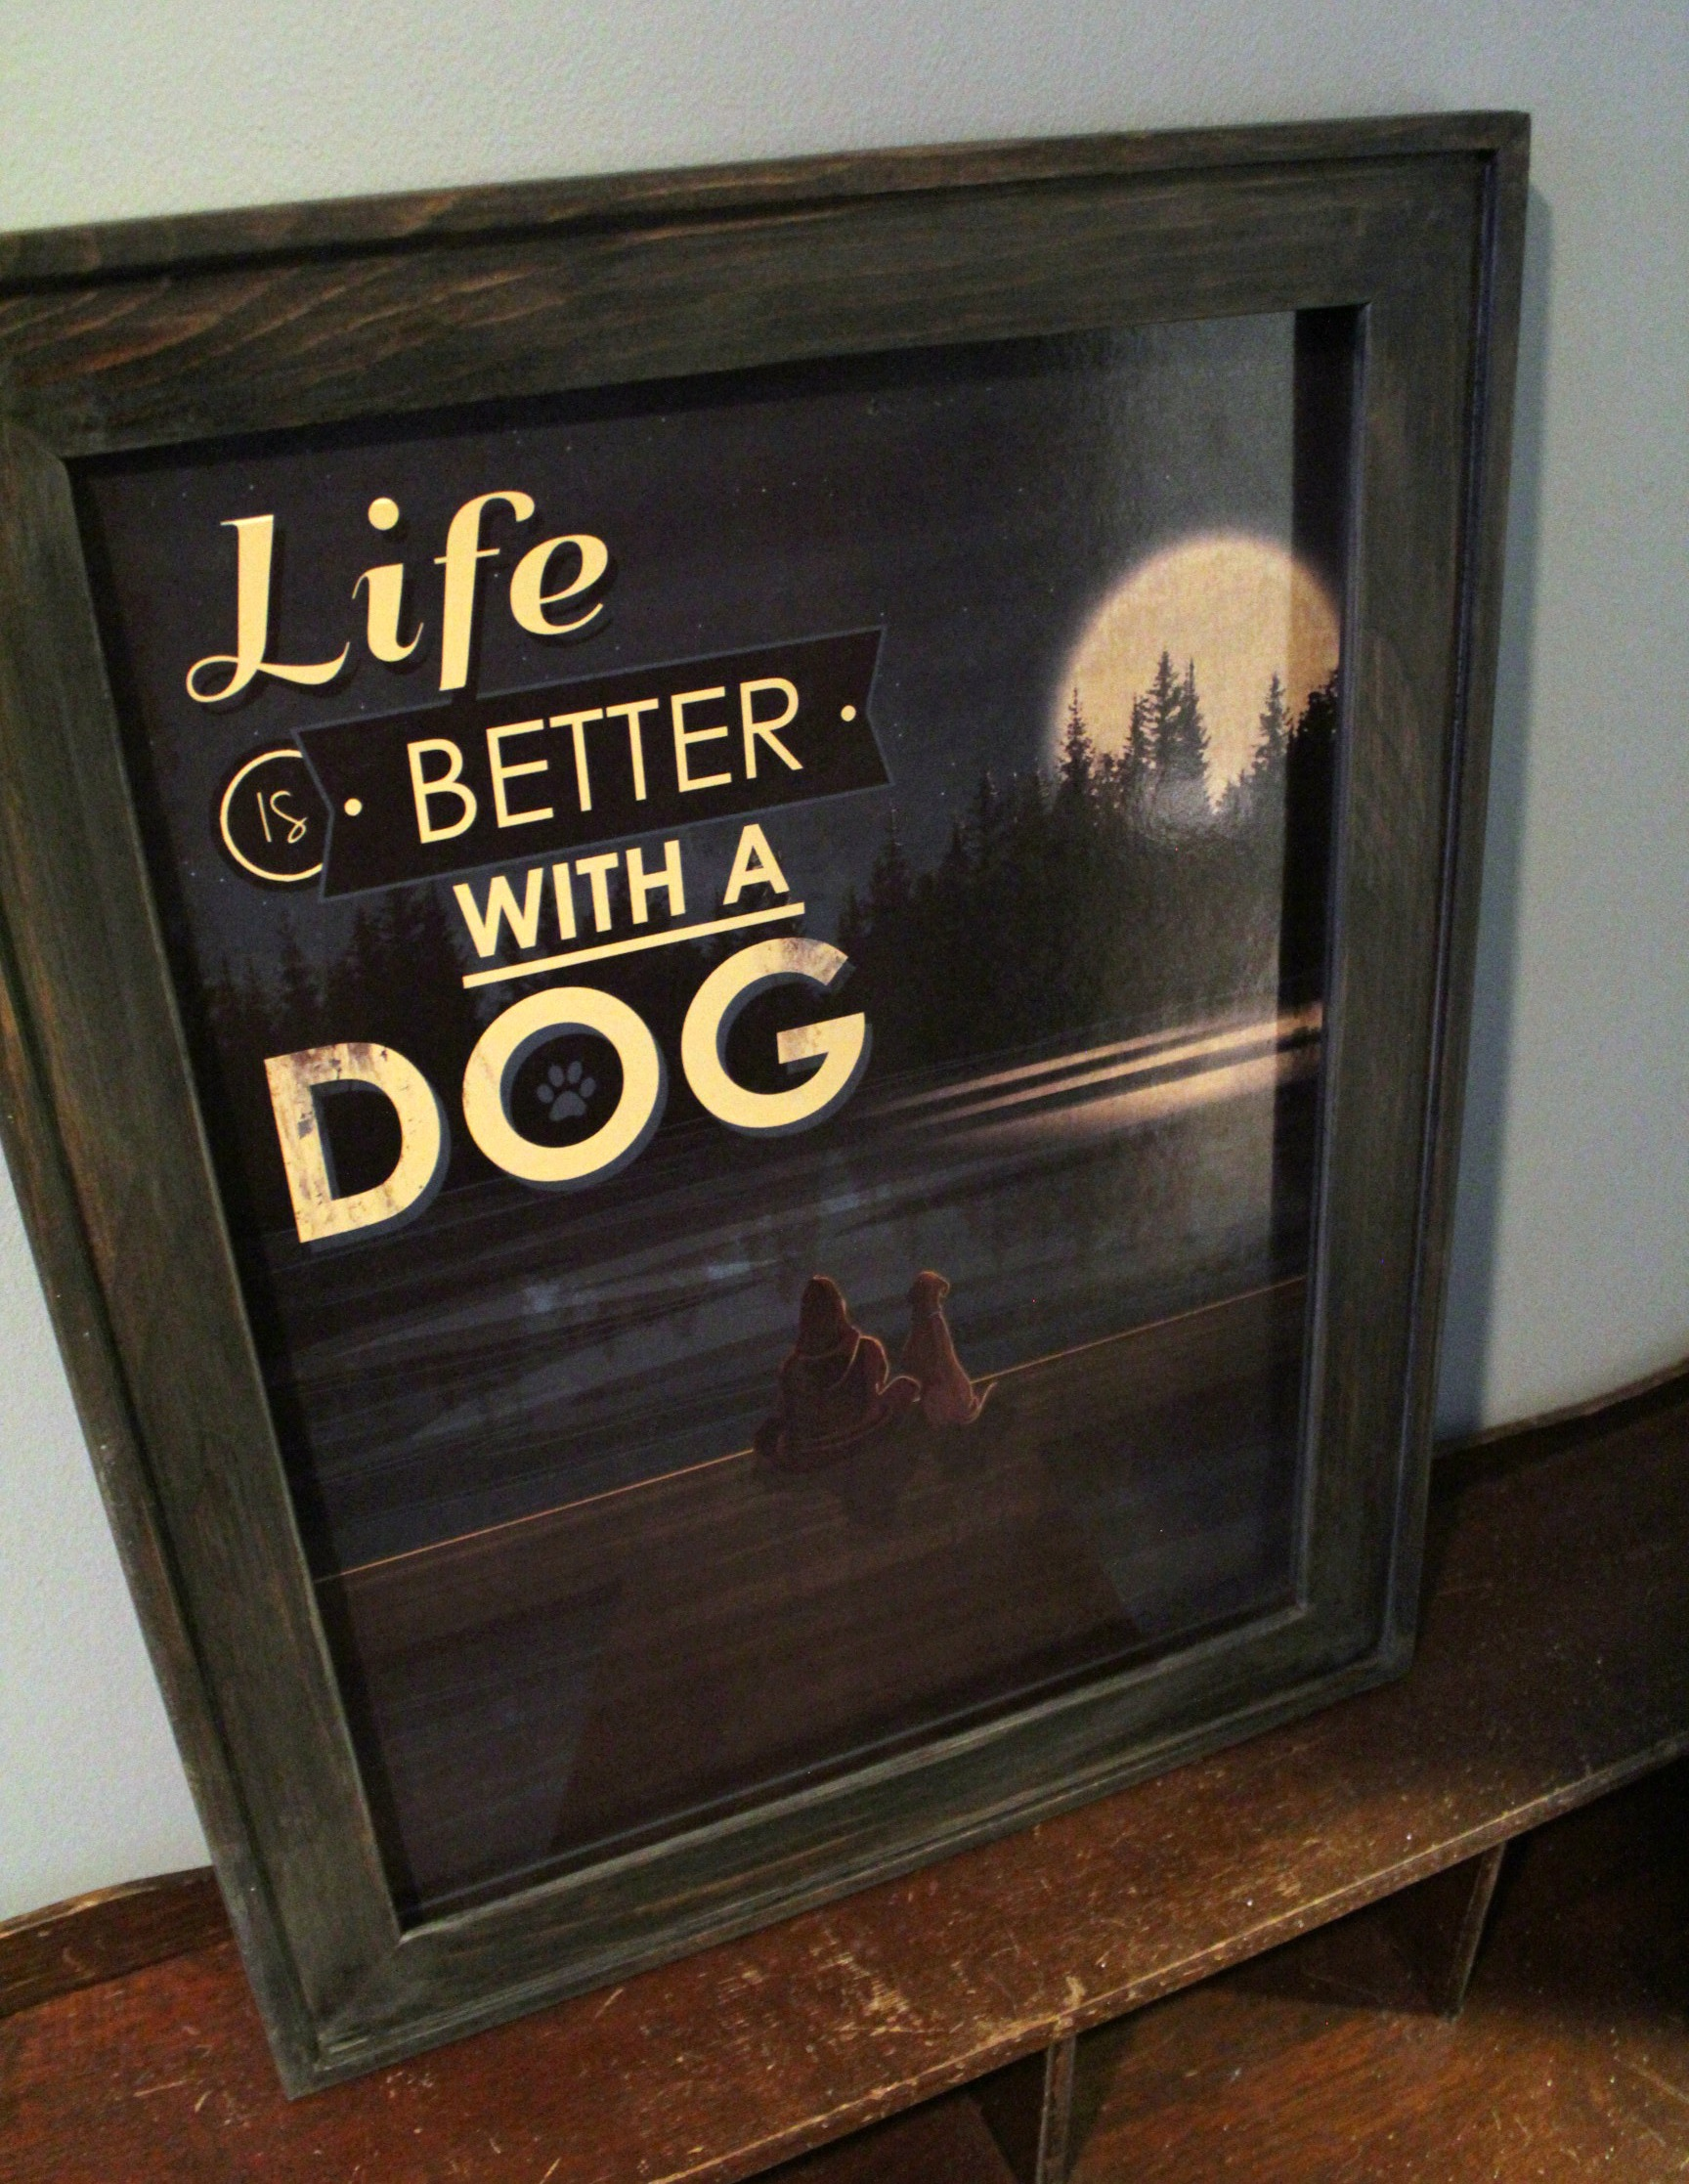 Life is better with a dog - framed